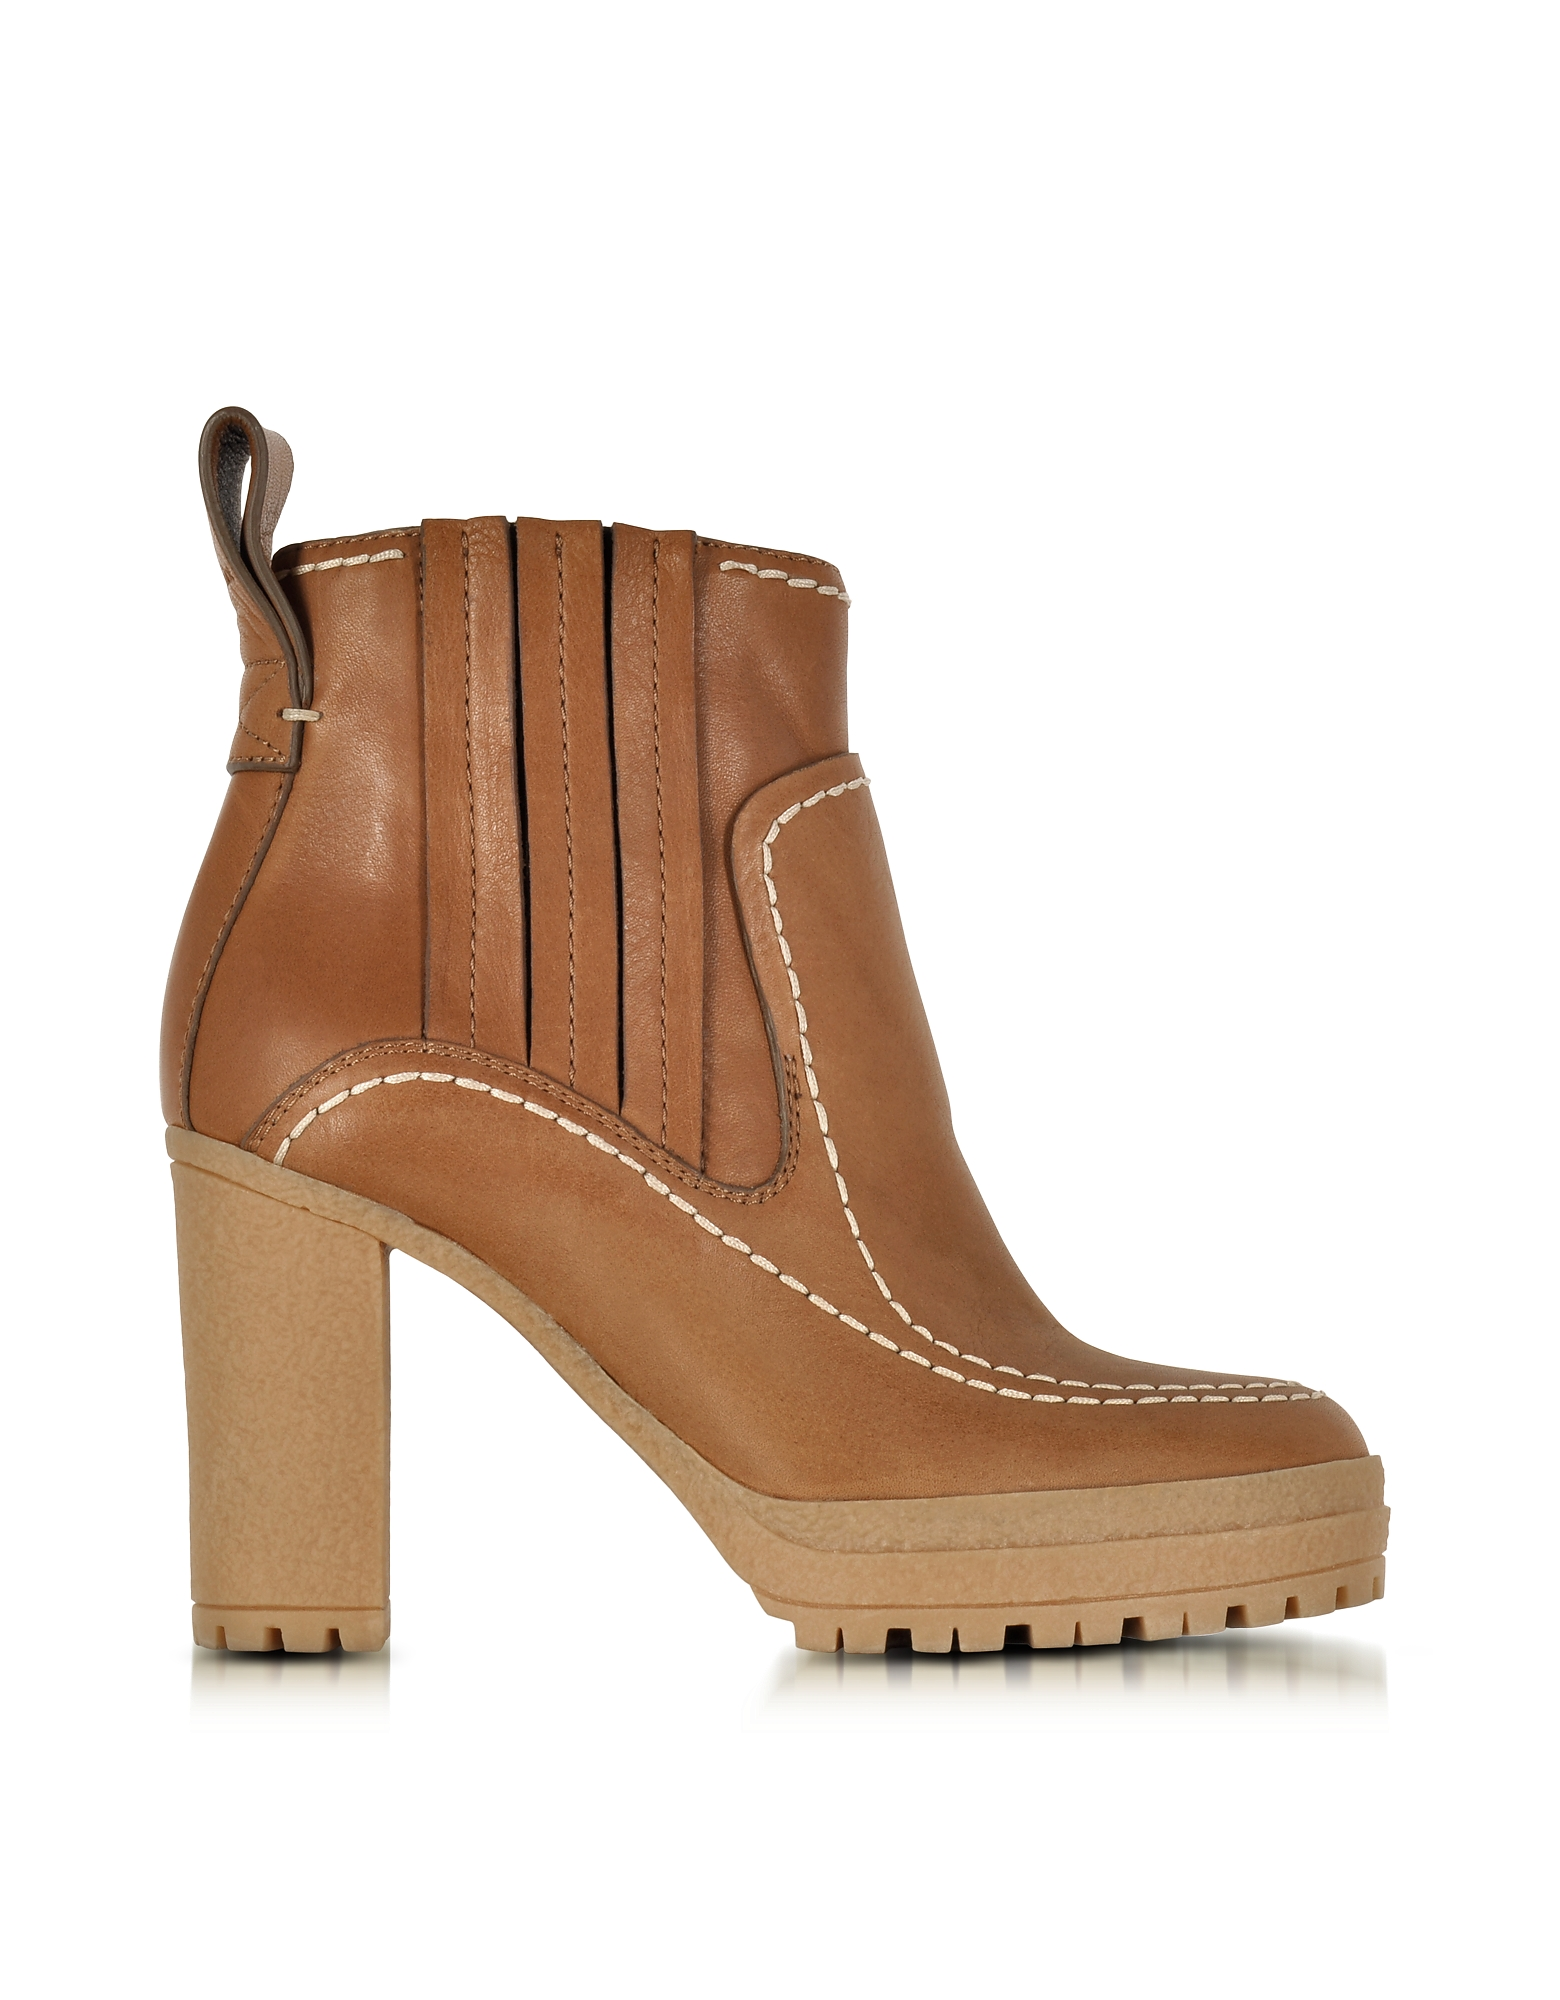 See by Chloé Shoes, Cuoio Leather High Heel Ankle Boots